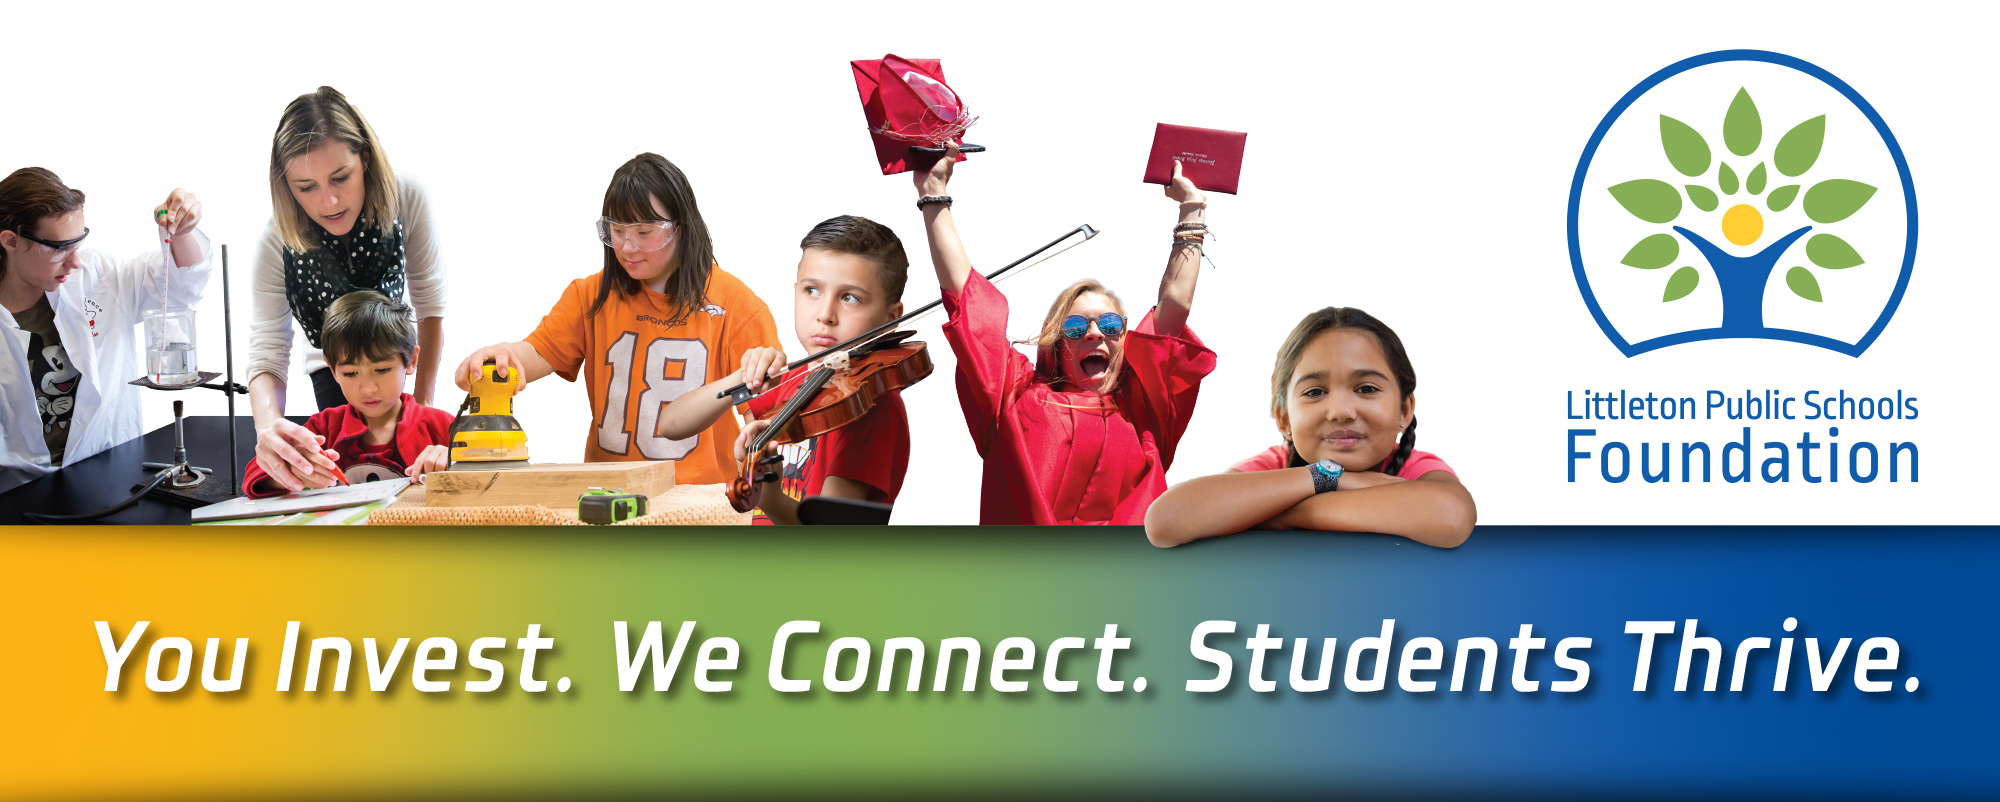 LPSF Banner - You Invest. We Connect. Students Thrive.